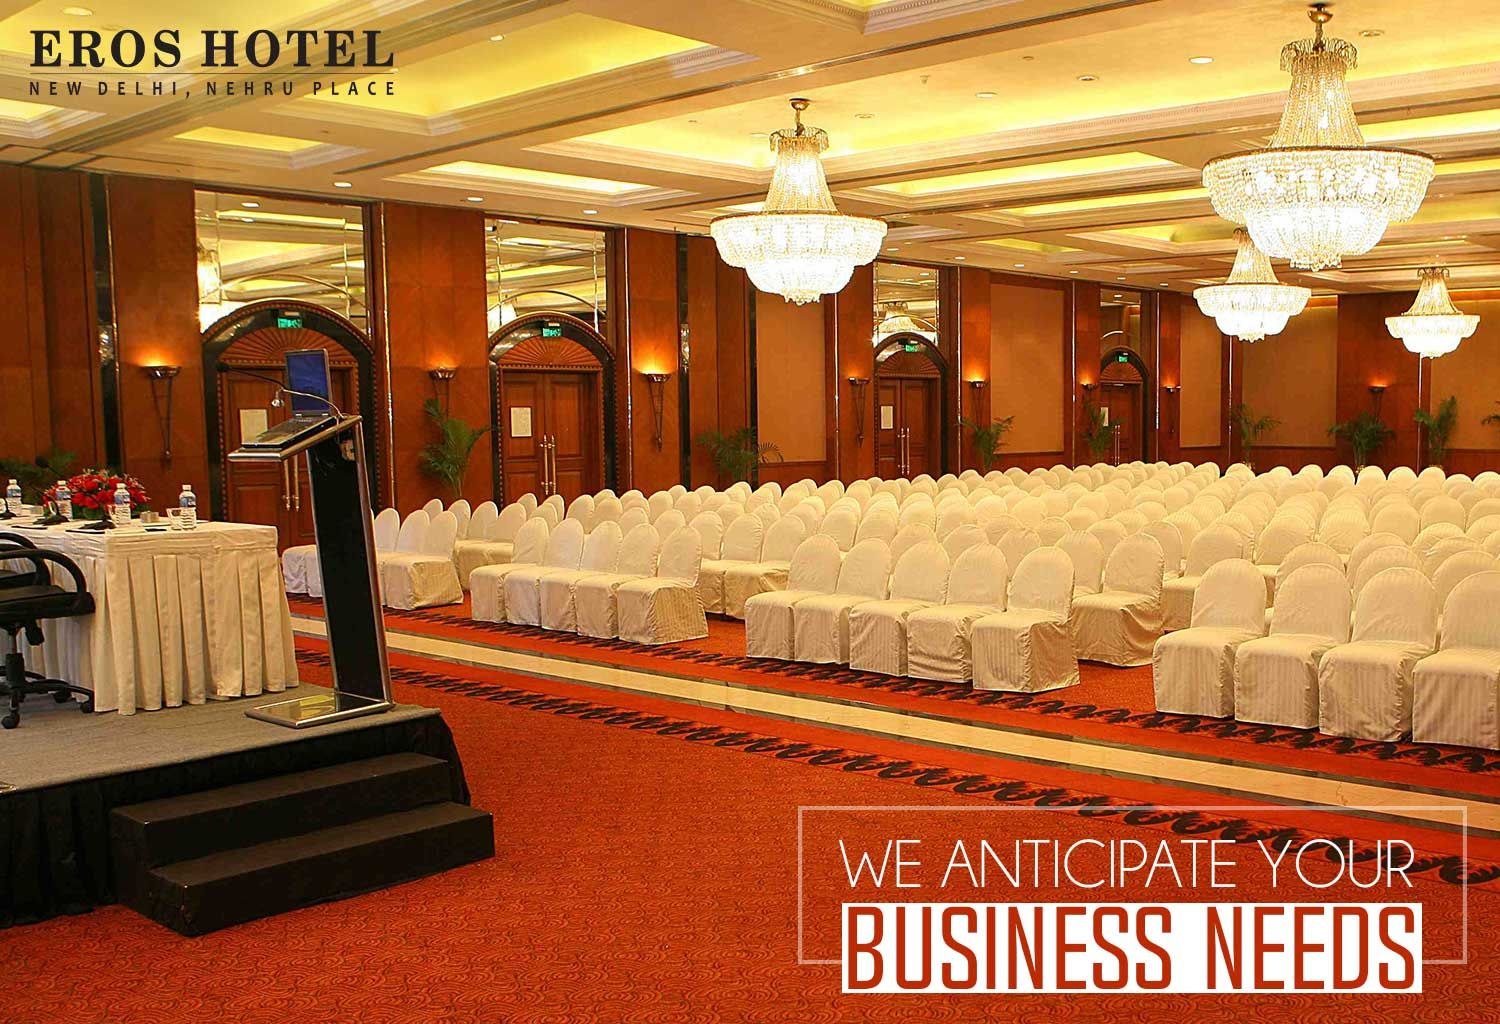 Plan your next business meet with us and weull take care of the rest